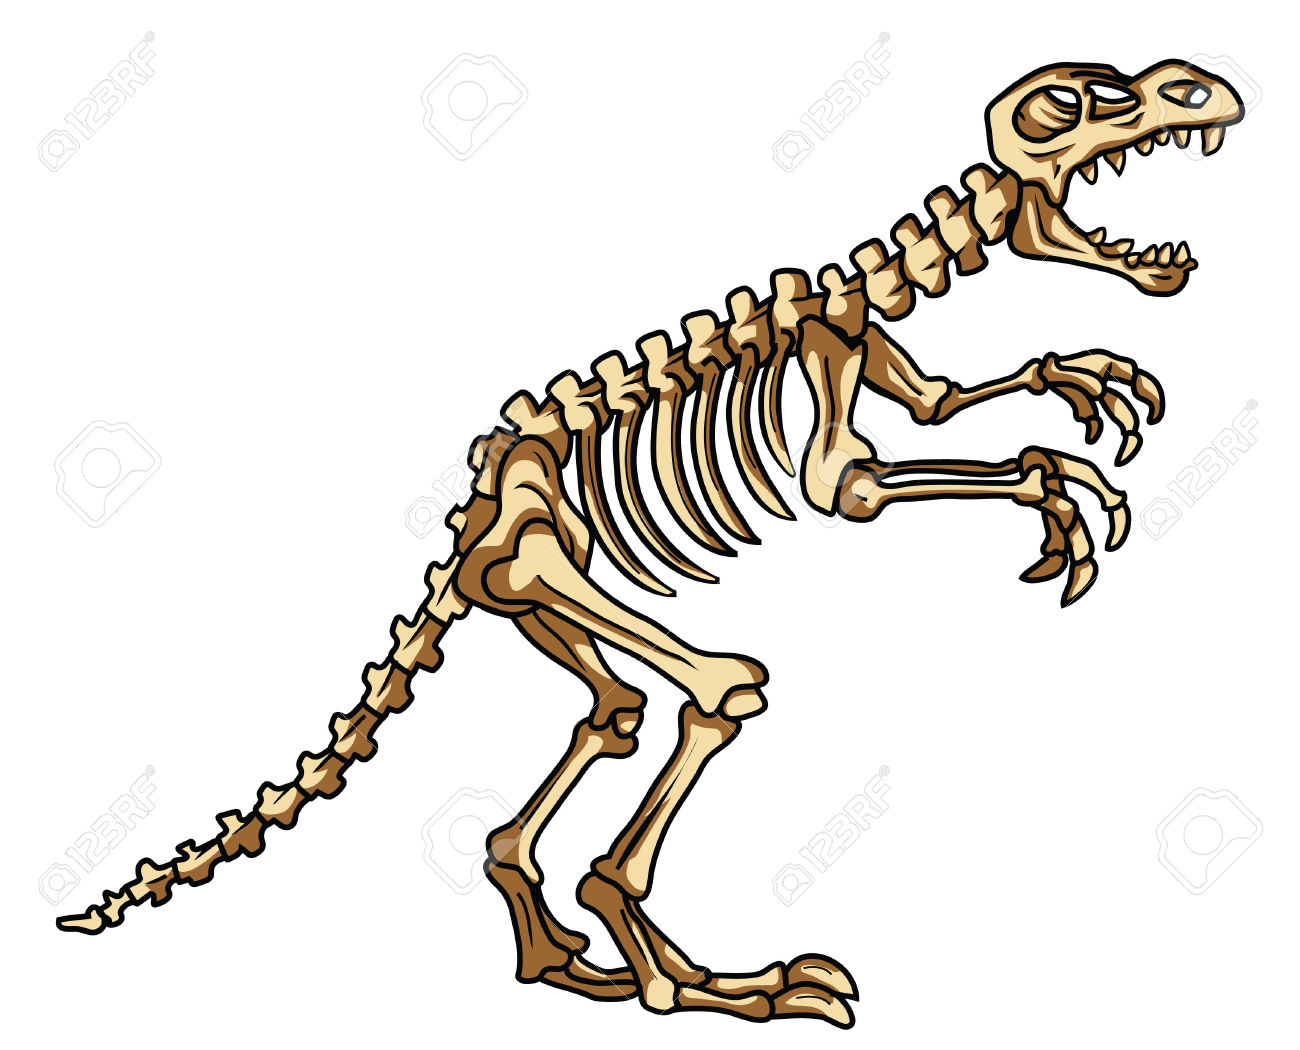 Dinosaur fossil clipart png free library Dinosaur fossil clipart 4 » Clipart Station png free library